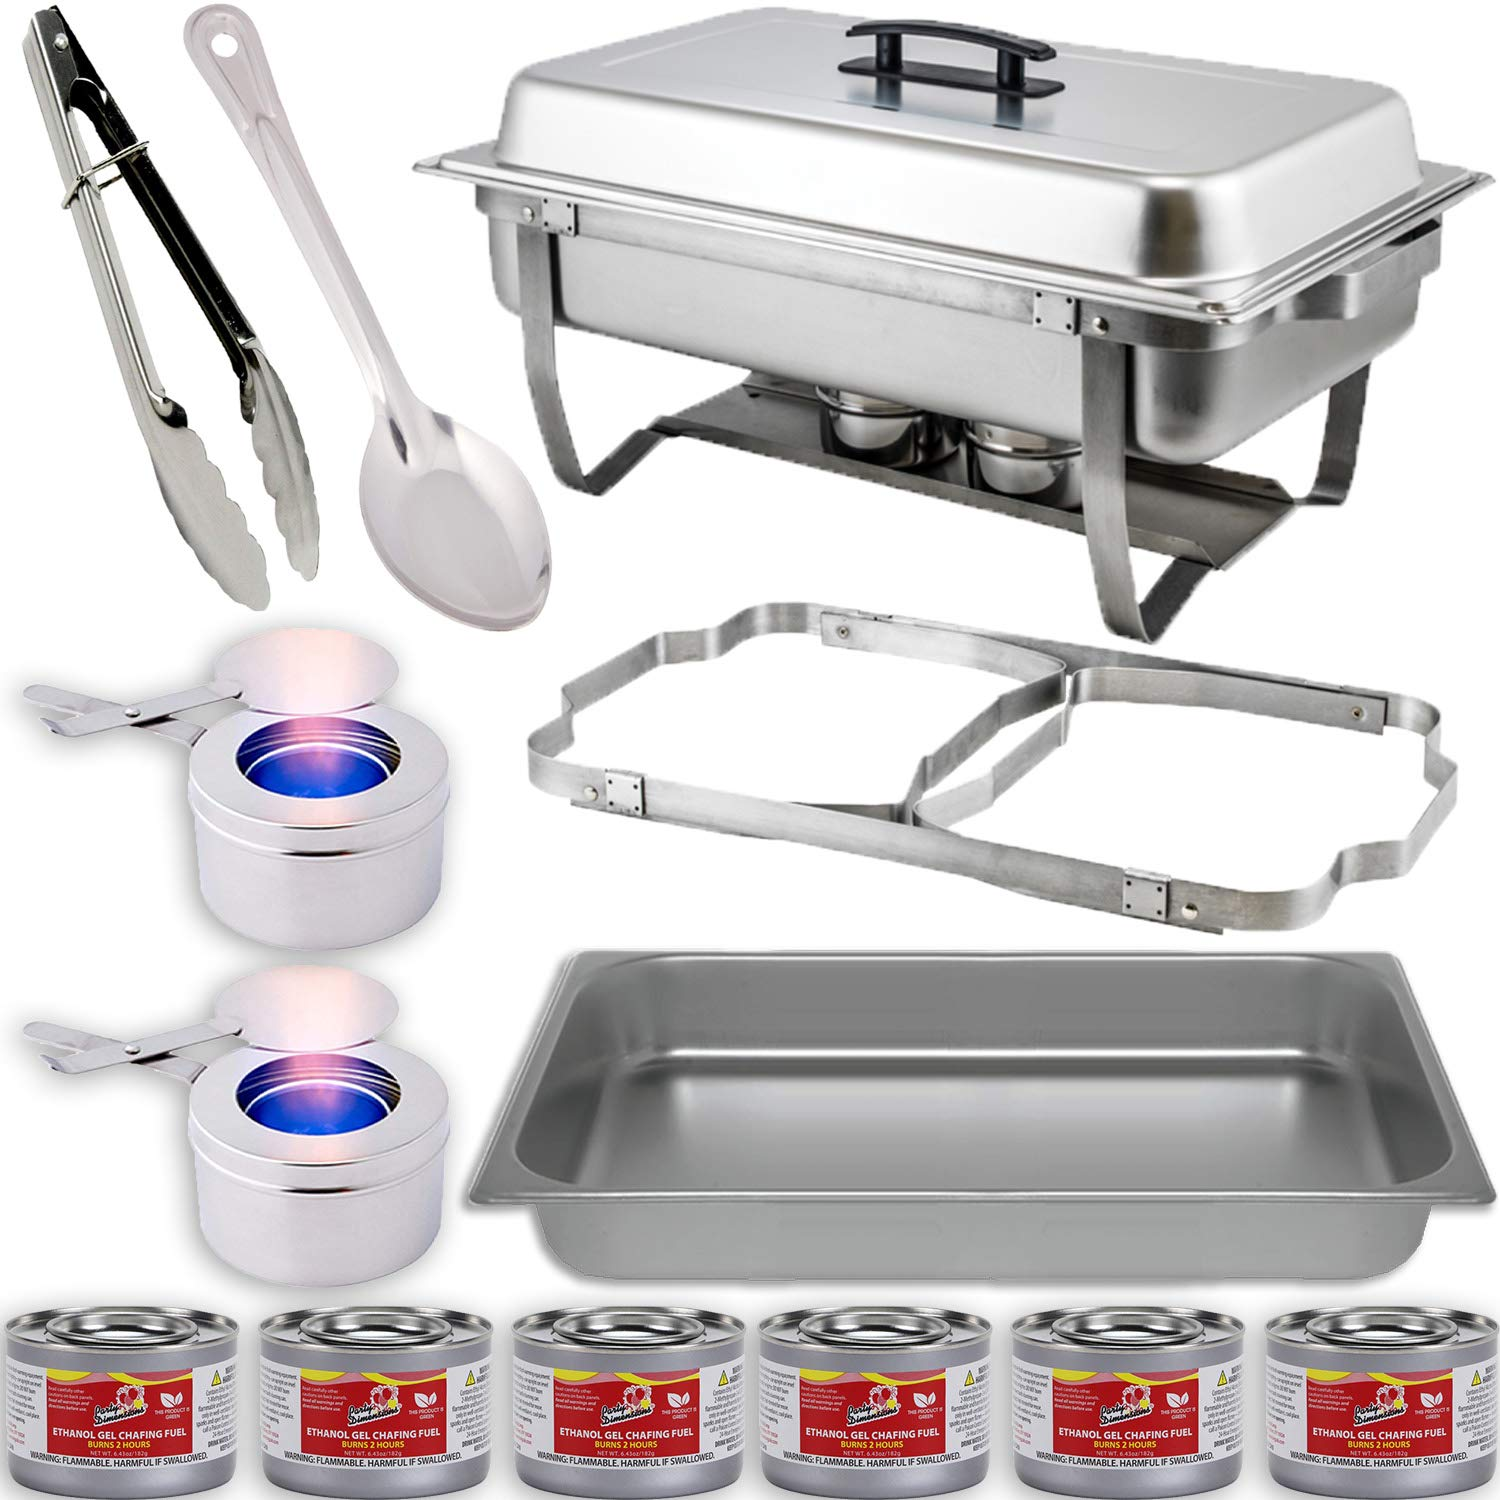 Chafing Dish Buffet Set w/Fuel - Folding Frame + Water Pan + Food Pan (8 qt) + 2 Fuel Holders + 6 Fuel Cans + Serving Utensils (15'' Solid Spoon + 9'' Tong) - Full Warmer Kit